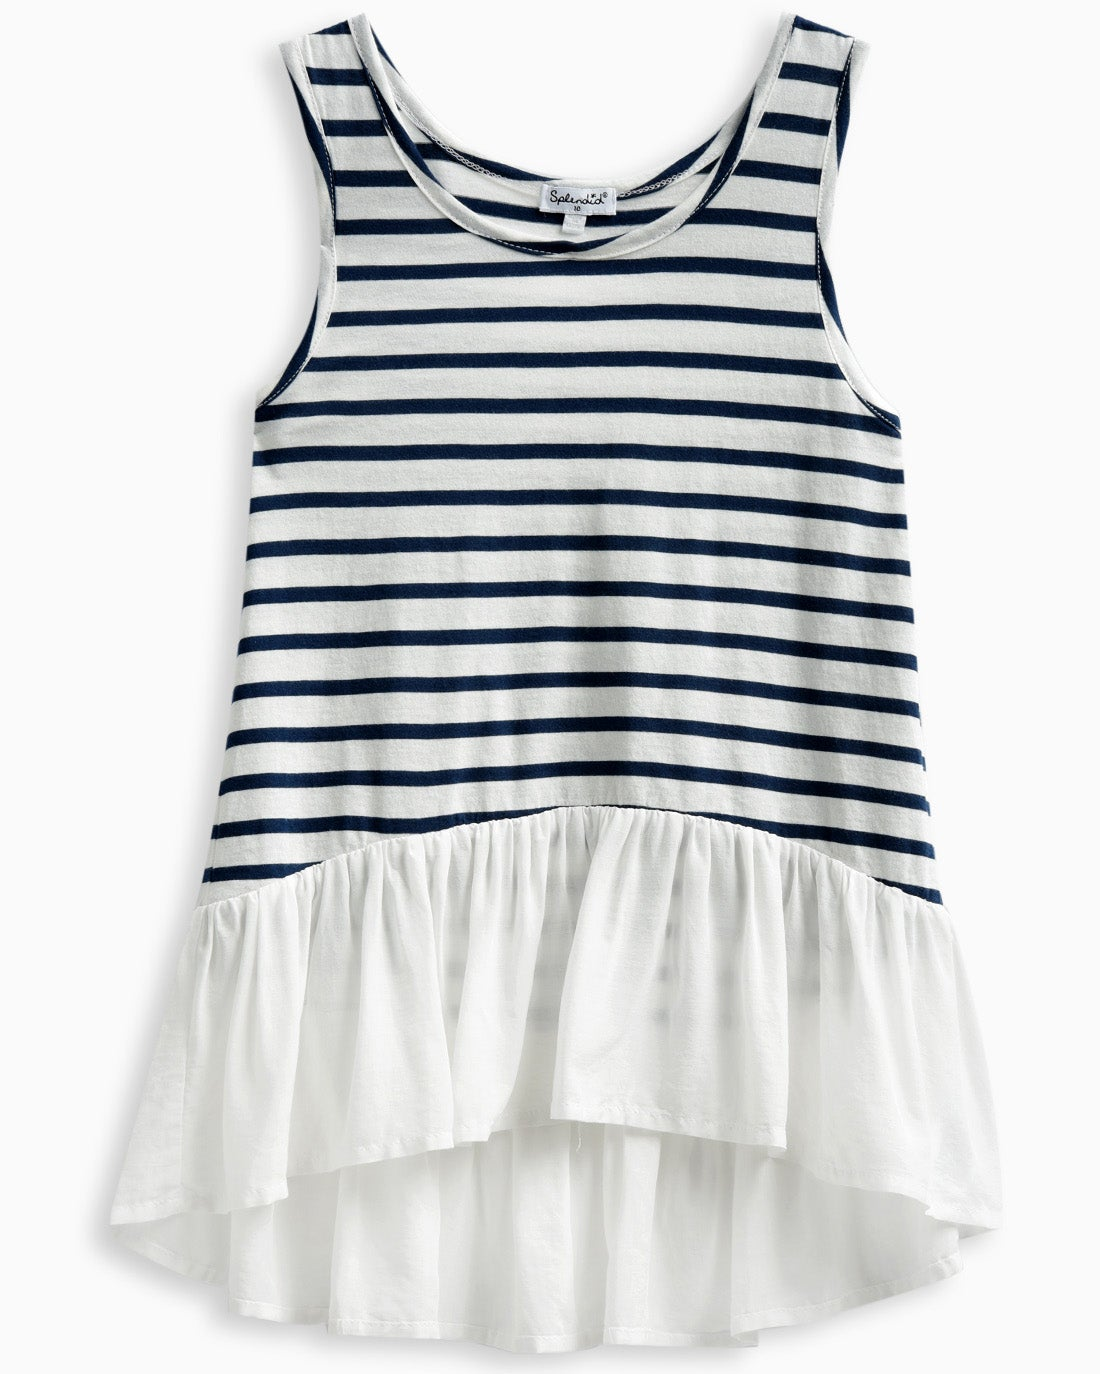 Elevated basics for her Stripes pair with a cute and billowy bottom hem for an adorable and effortless style Pairs easily Sleeveless